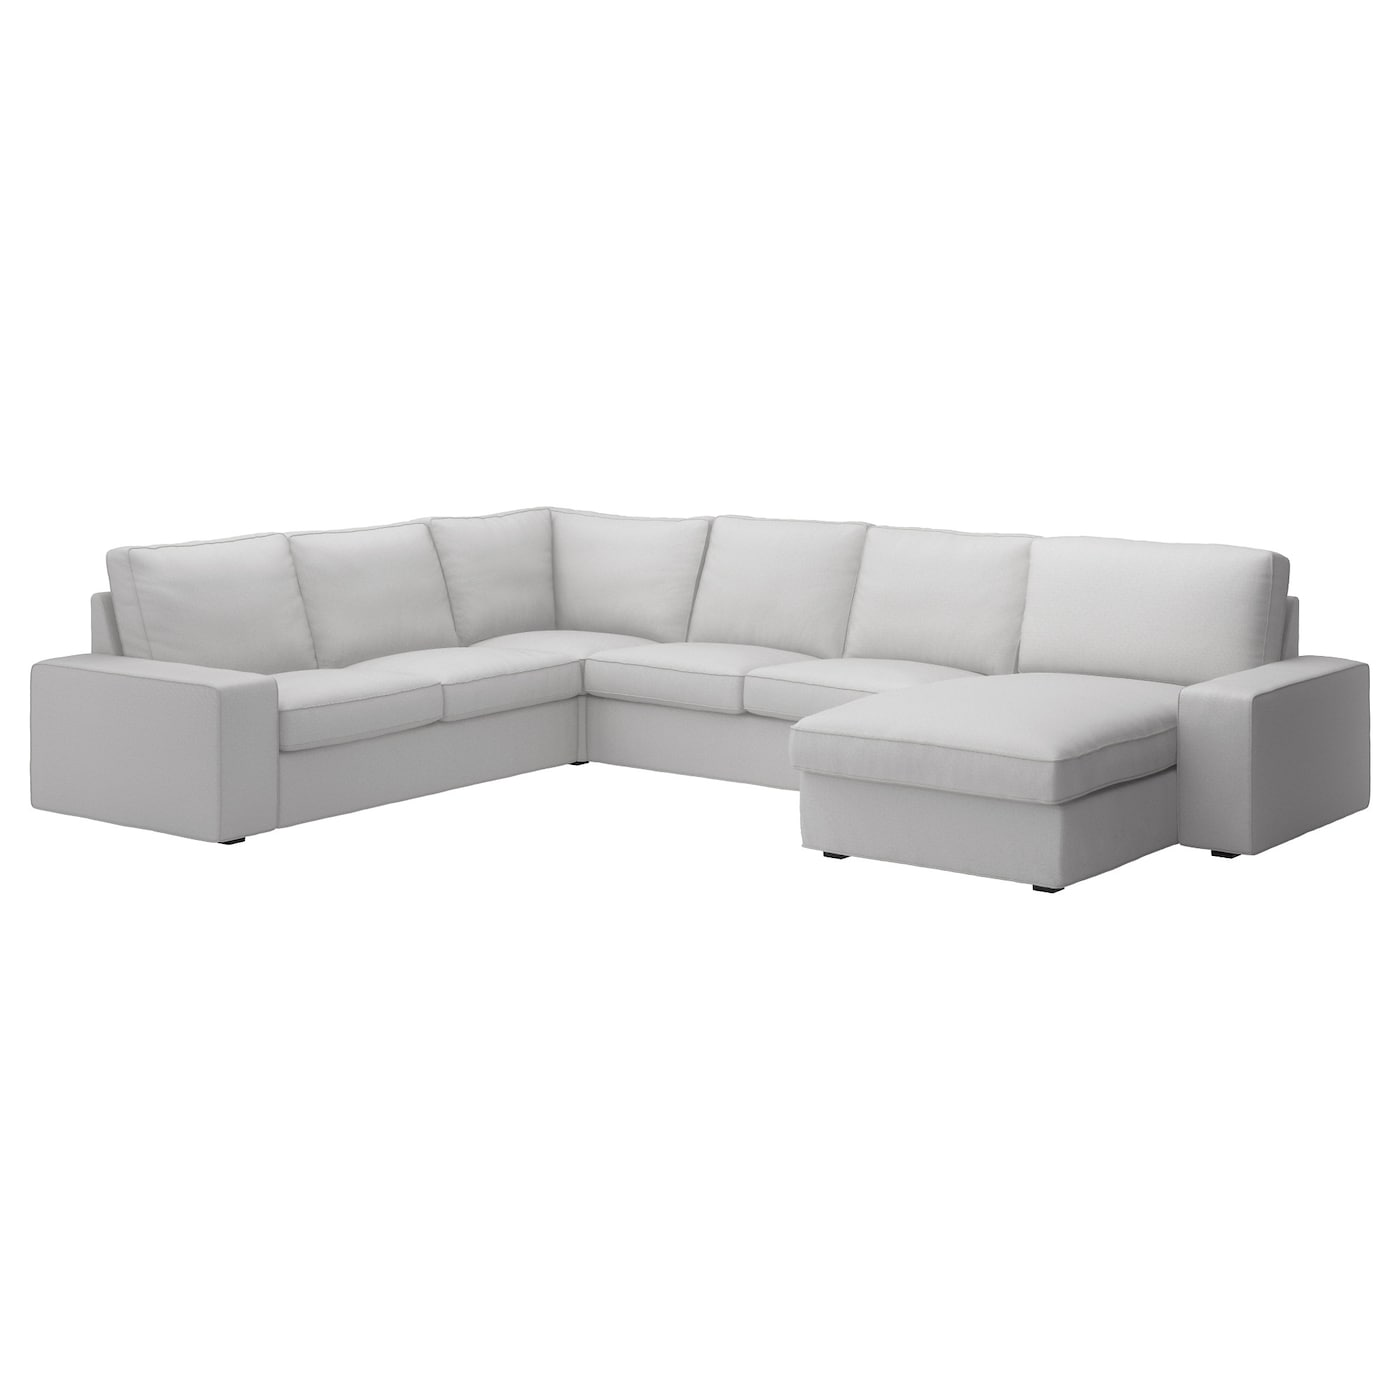 Kivik corner sofa 2 2 with chaise longue ramna light grey for Sofas con chaise longue